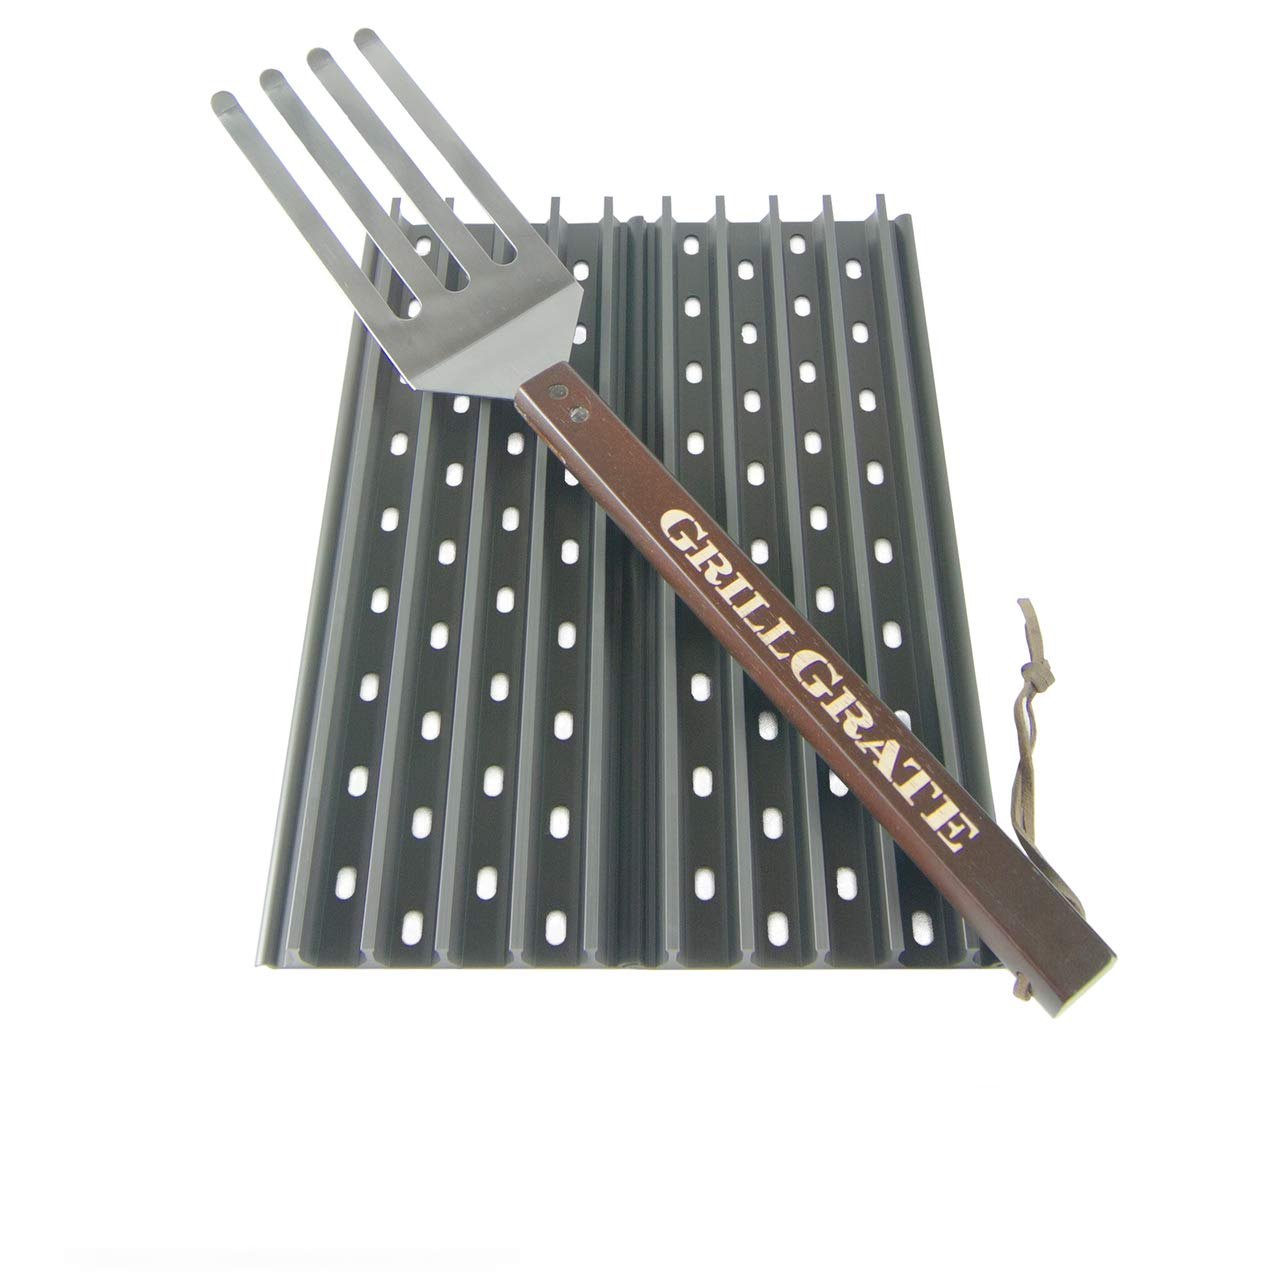 GrillGrate Set of Two 13.75'' (Interlocking) + Grate Tool by GrillGrate